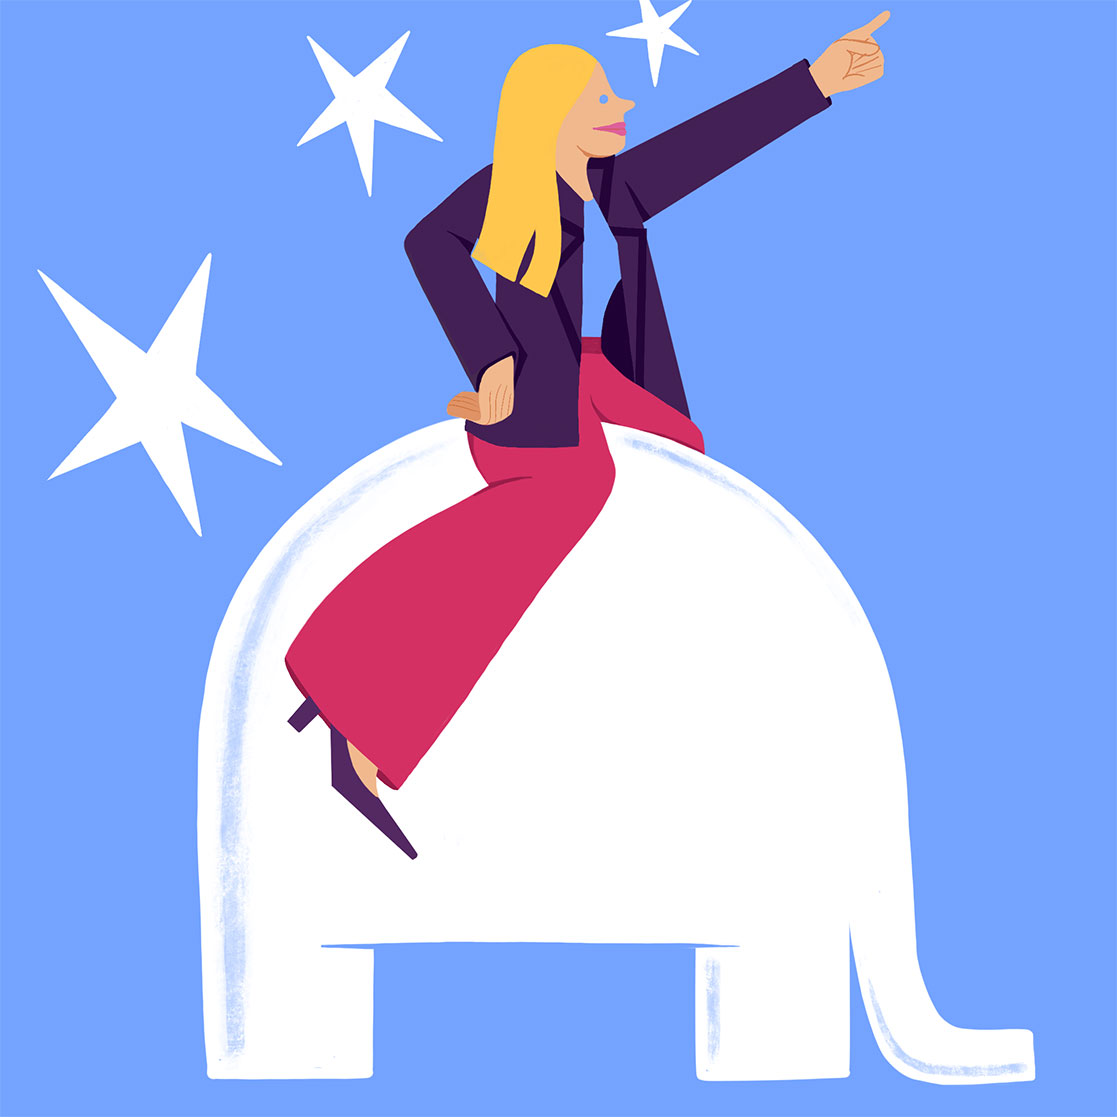 GOP Illustration: Woman riding an elephant pointing forward